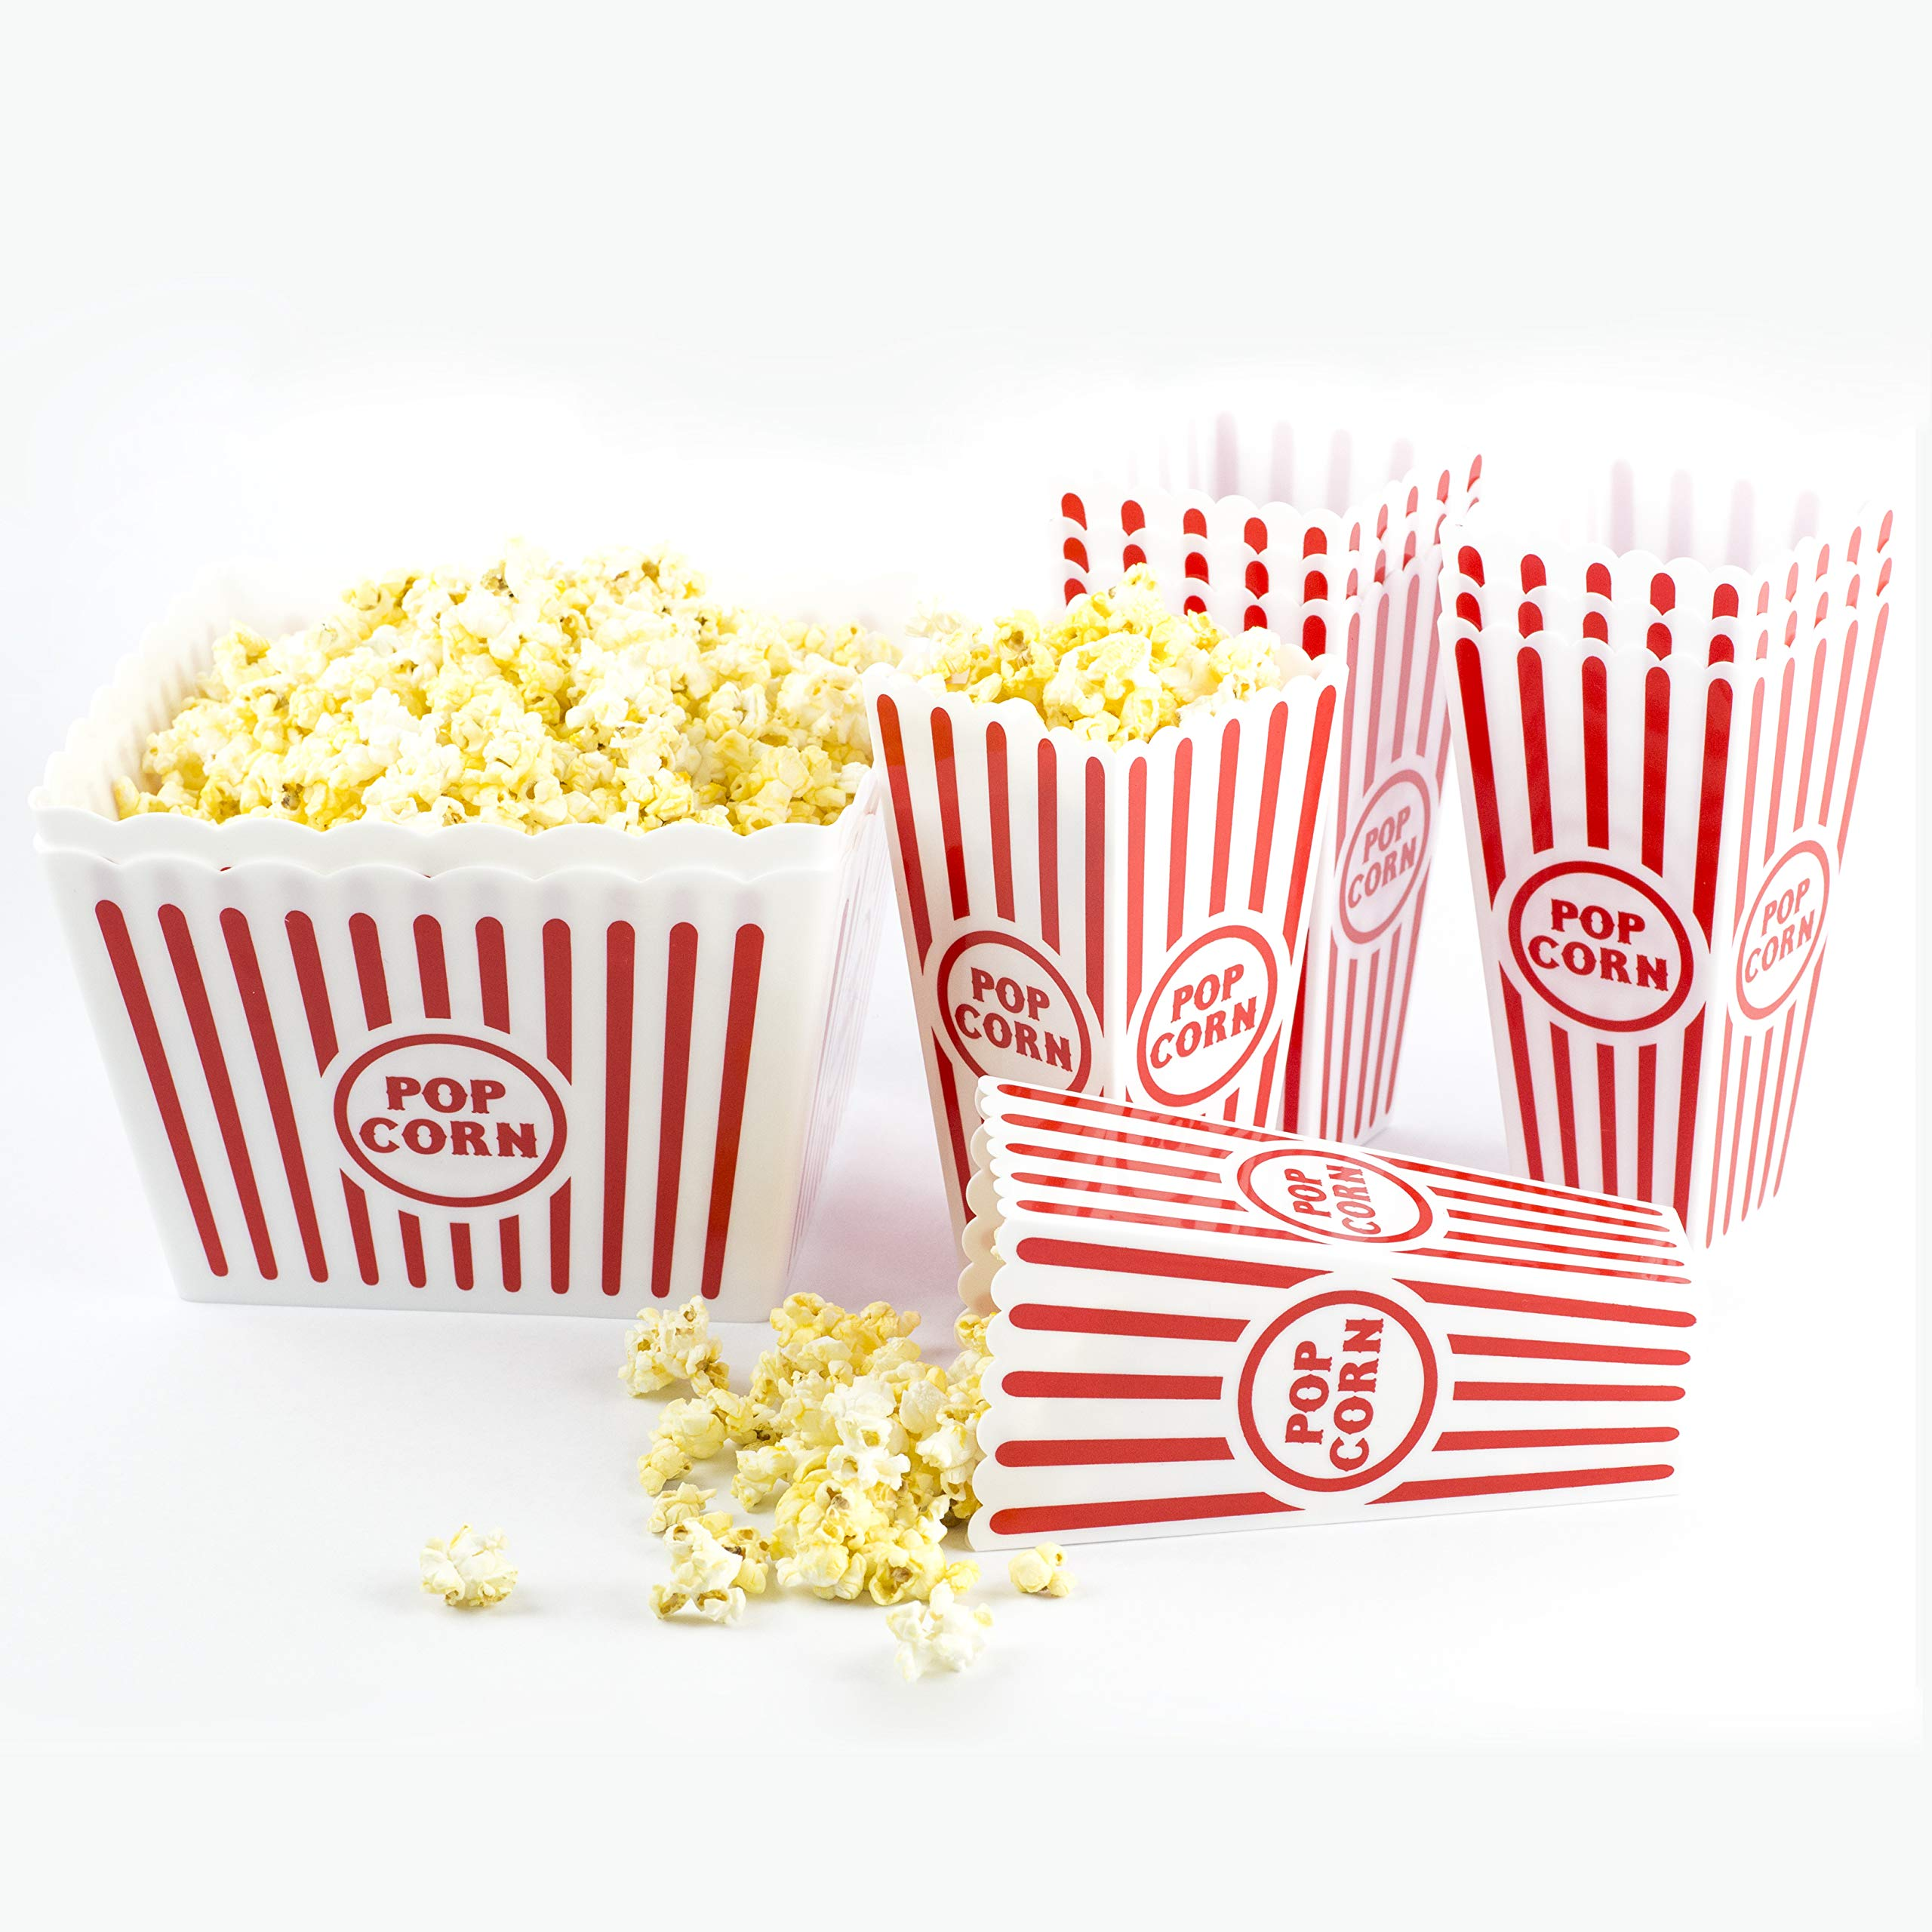 Plastic Popcorn Boxes Reusable | Family Pack x 2 (pack of 10) | Popcorn Buckets Dishwasher Friendly | Sturdy Plastic, Not Flimsy | Movie Theater Style Popcorn Containers | Perfect for Movie Night by Dual 11 LLC